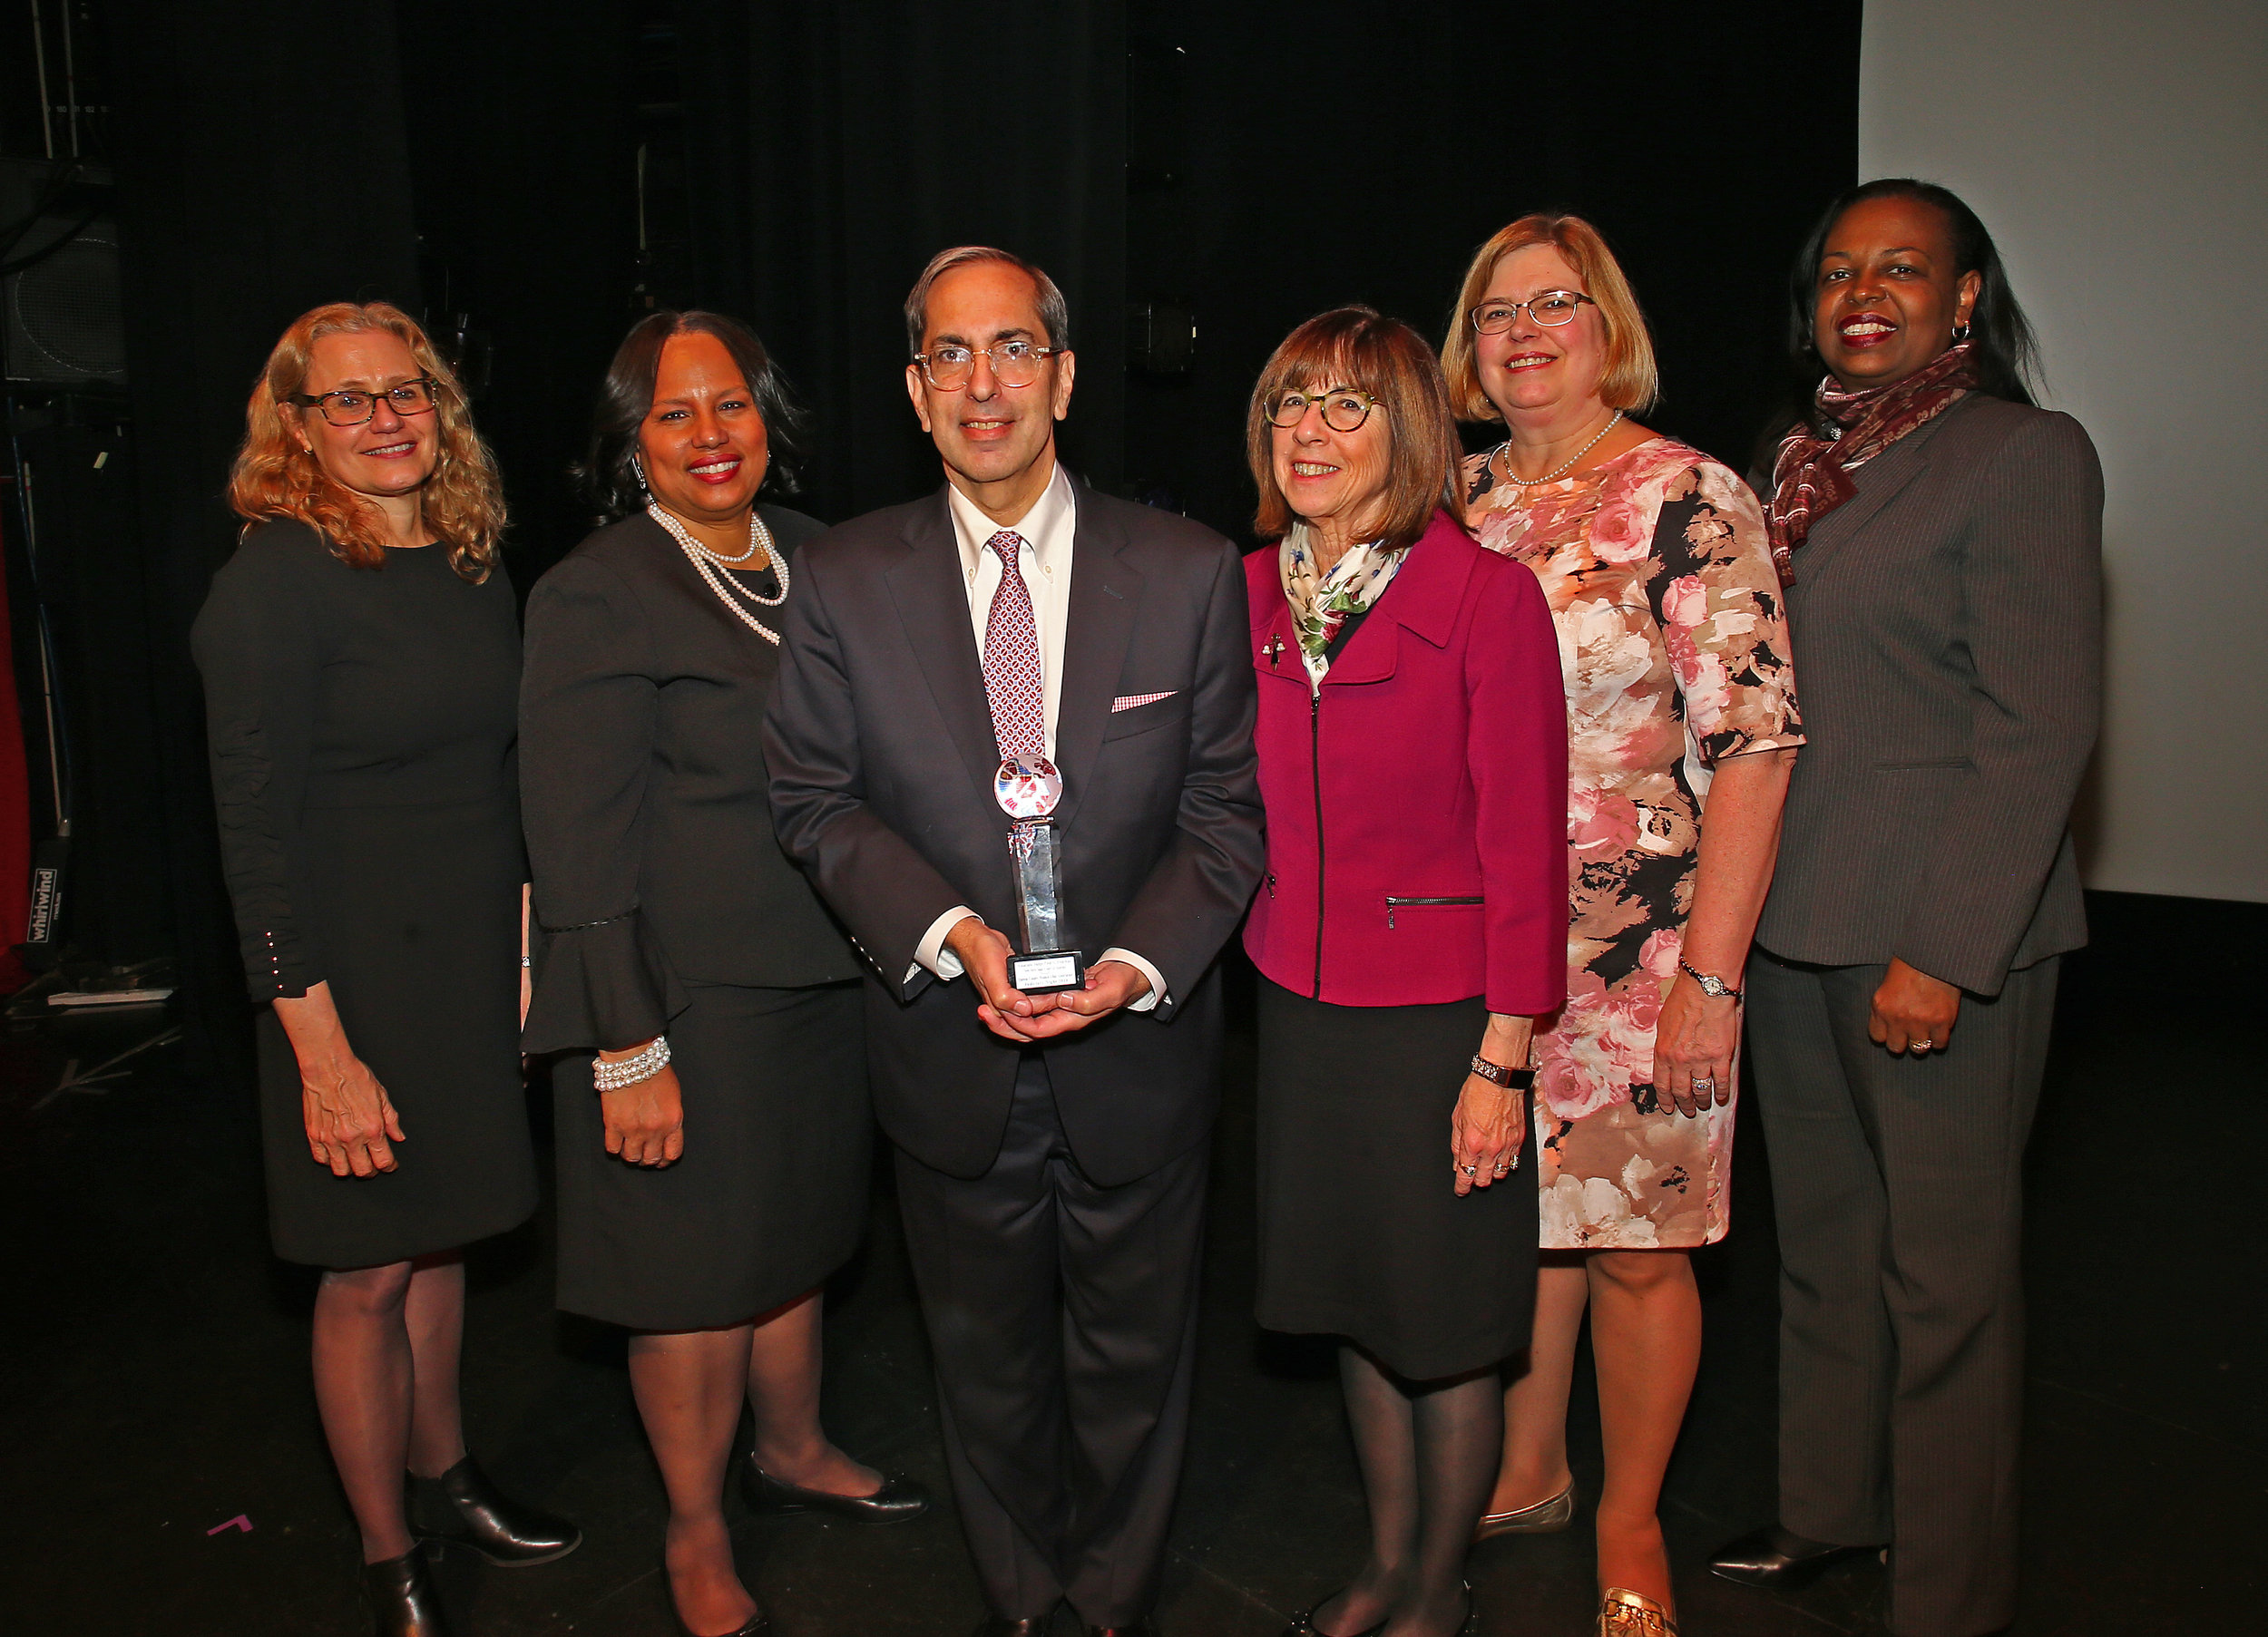 From left, Lisa Mevorach, QWCBA President Adrienne Williams, Judge Paul G. Feinman,  Judge Bernice Siegal, Louise Derevlany and Judge Marguerite Grays.